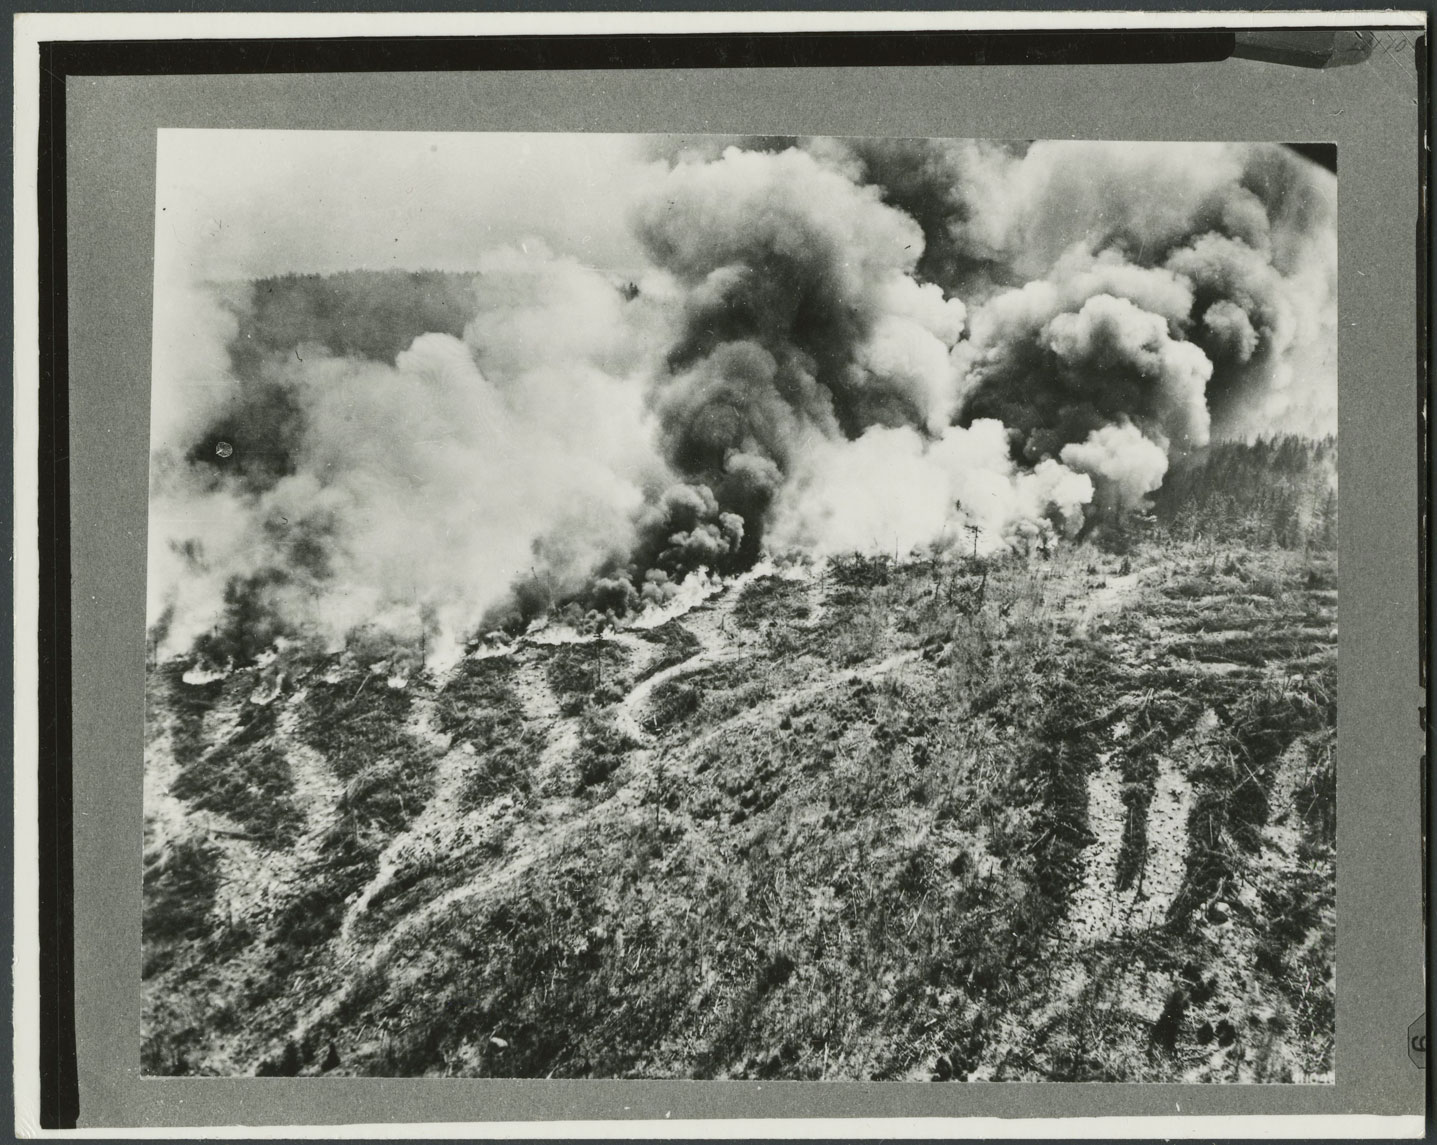 A black and white photograph of a wide landscape is seen. The landscape is hilly but not steep; there are trees and brush throughout. There are also several dirt paths across the hill. In a line across the photograph, a wildfire is raging. The smoke reaches far into the sky and is dark and voluminous. Flames are seen across the hill in a thick line.